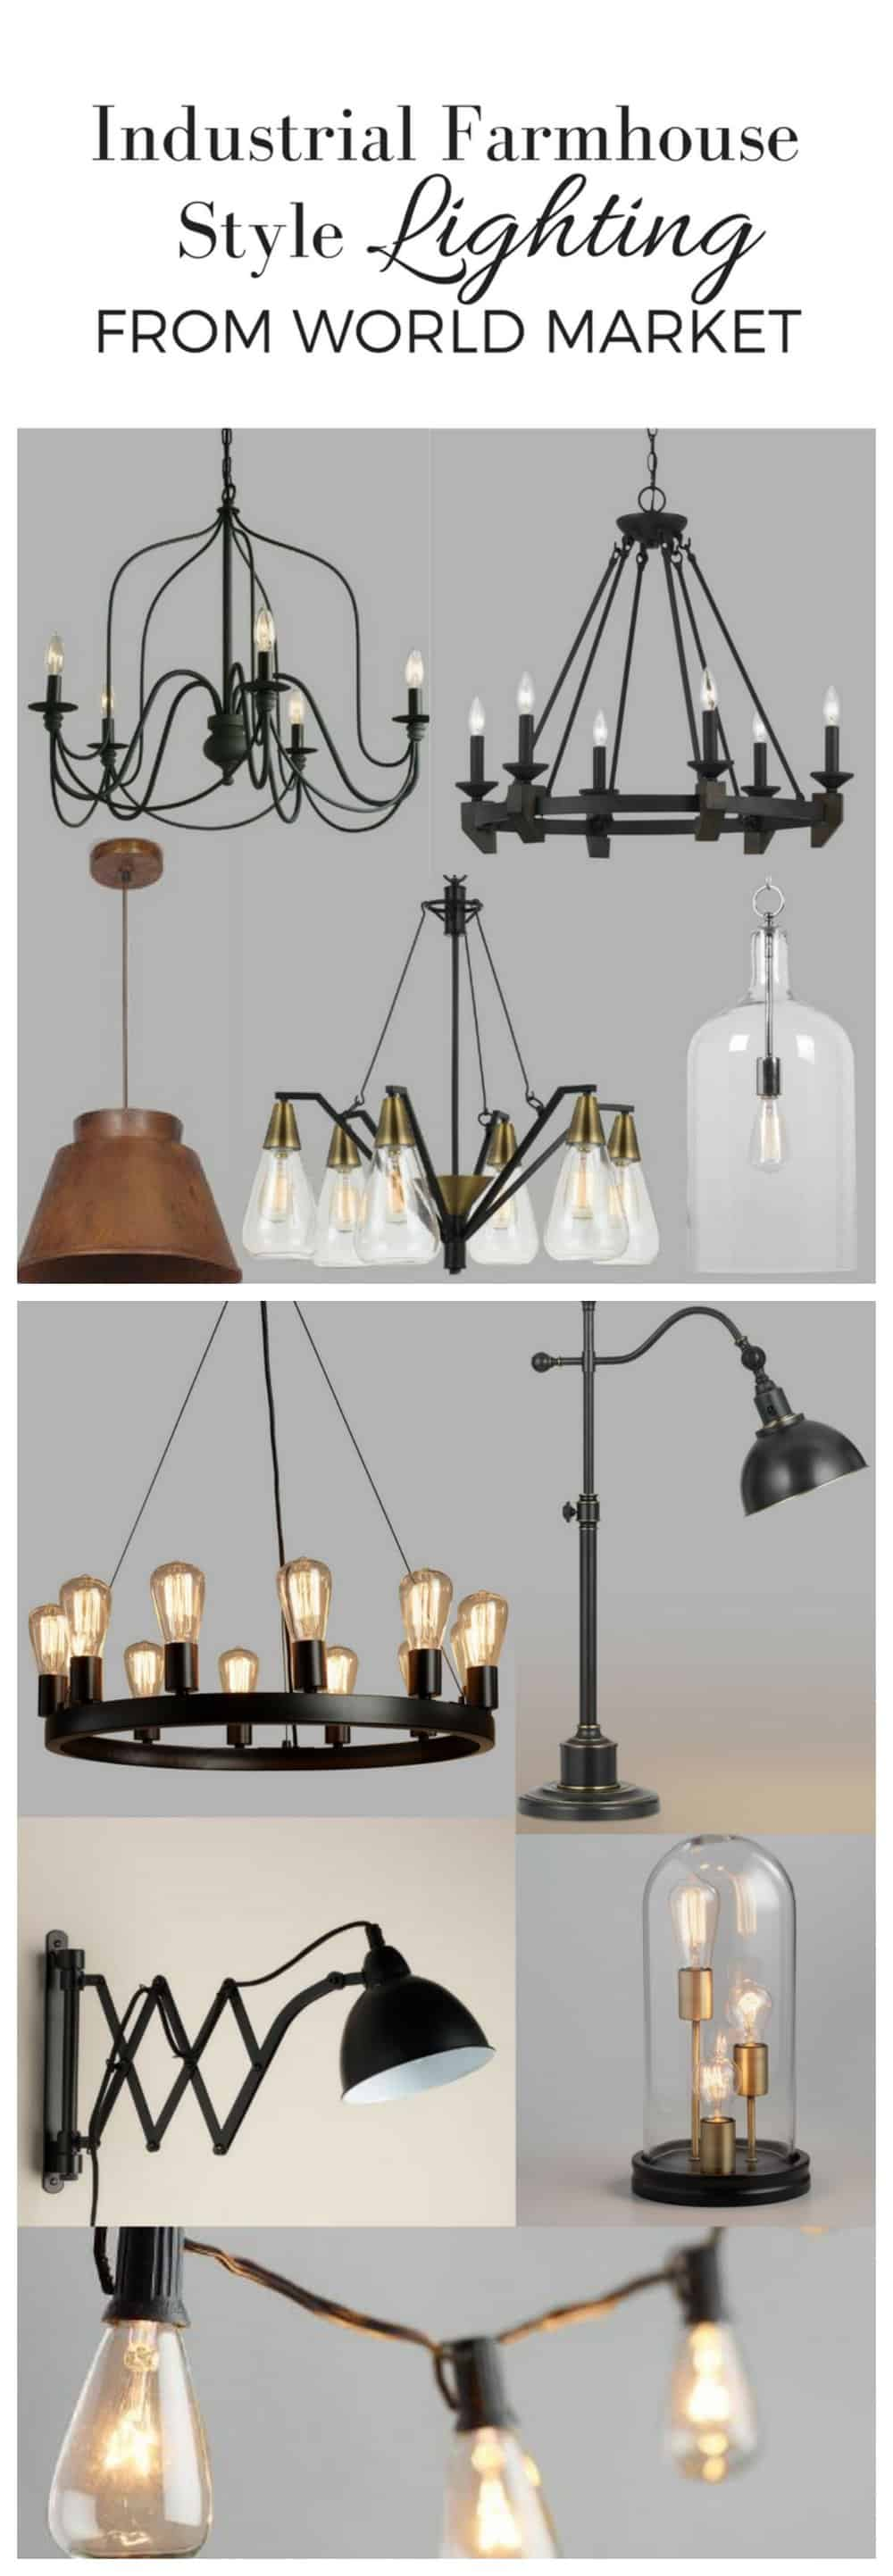 Industrial Farmhouse Style Lighting from World Market Farmhouse on Boone